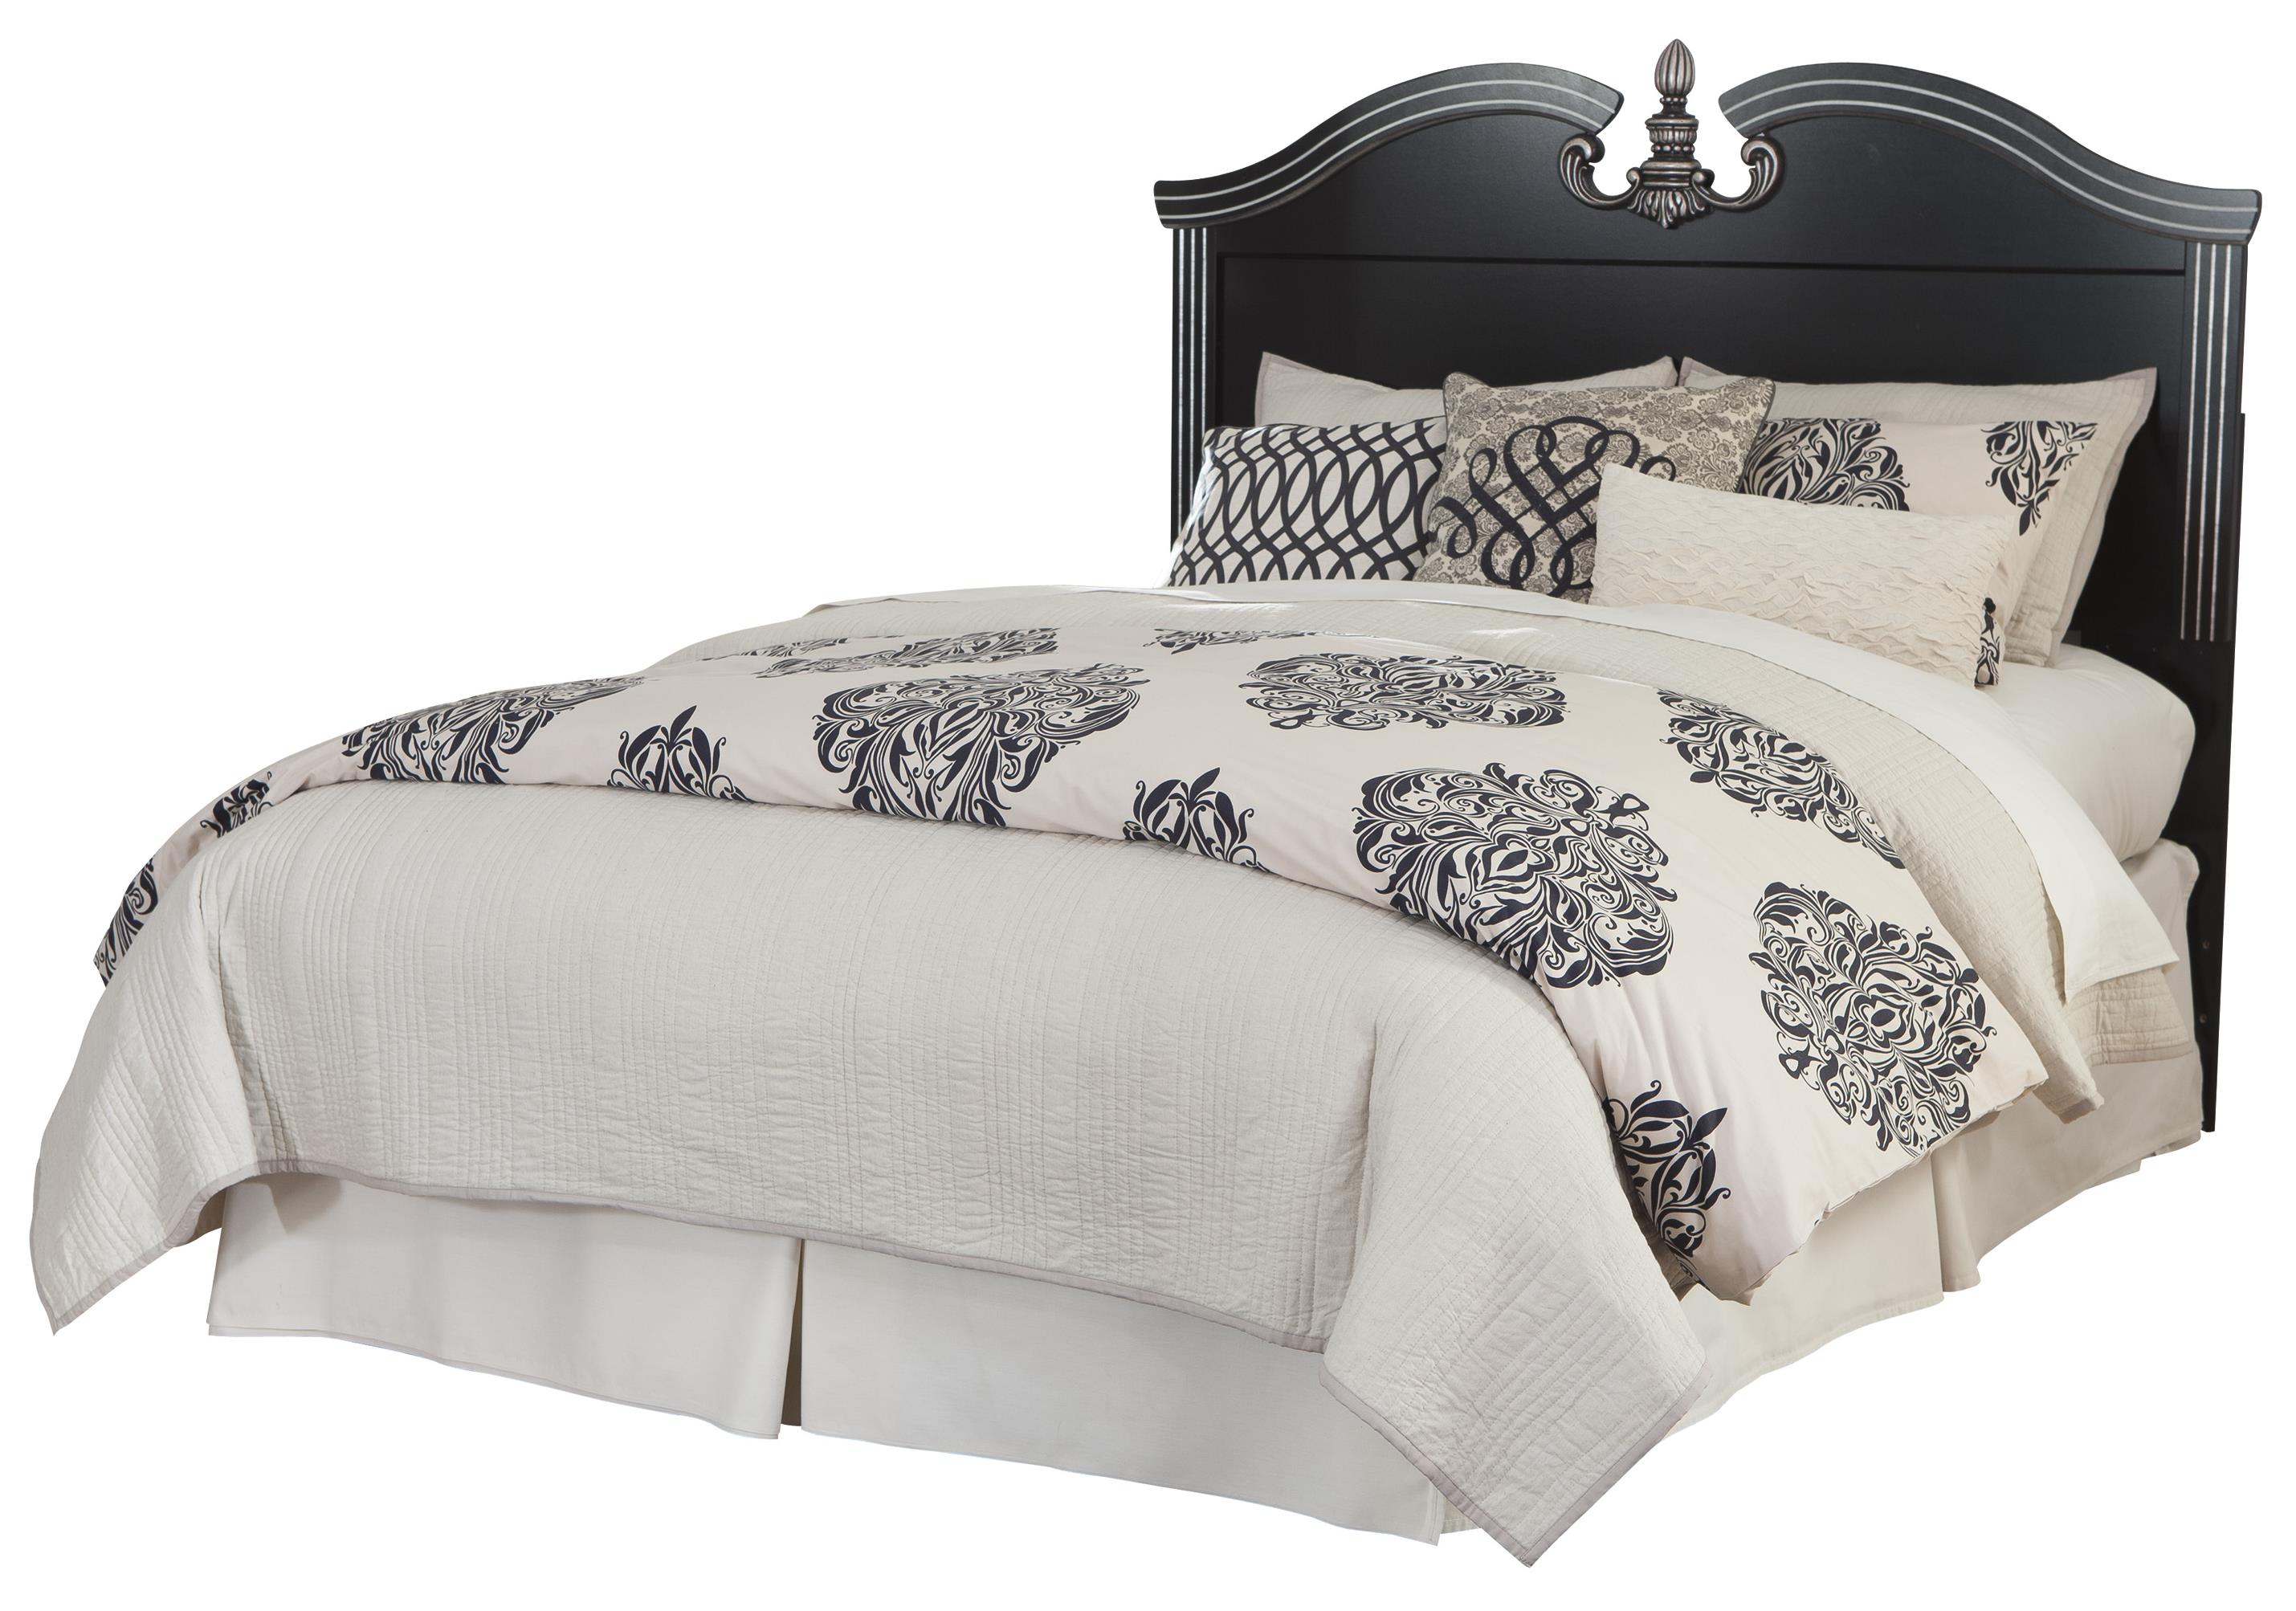 Signature Design by Ashley Navoni Queen/Full Panel Headboard - Item Number: B301-57